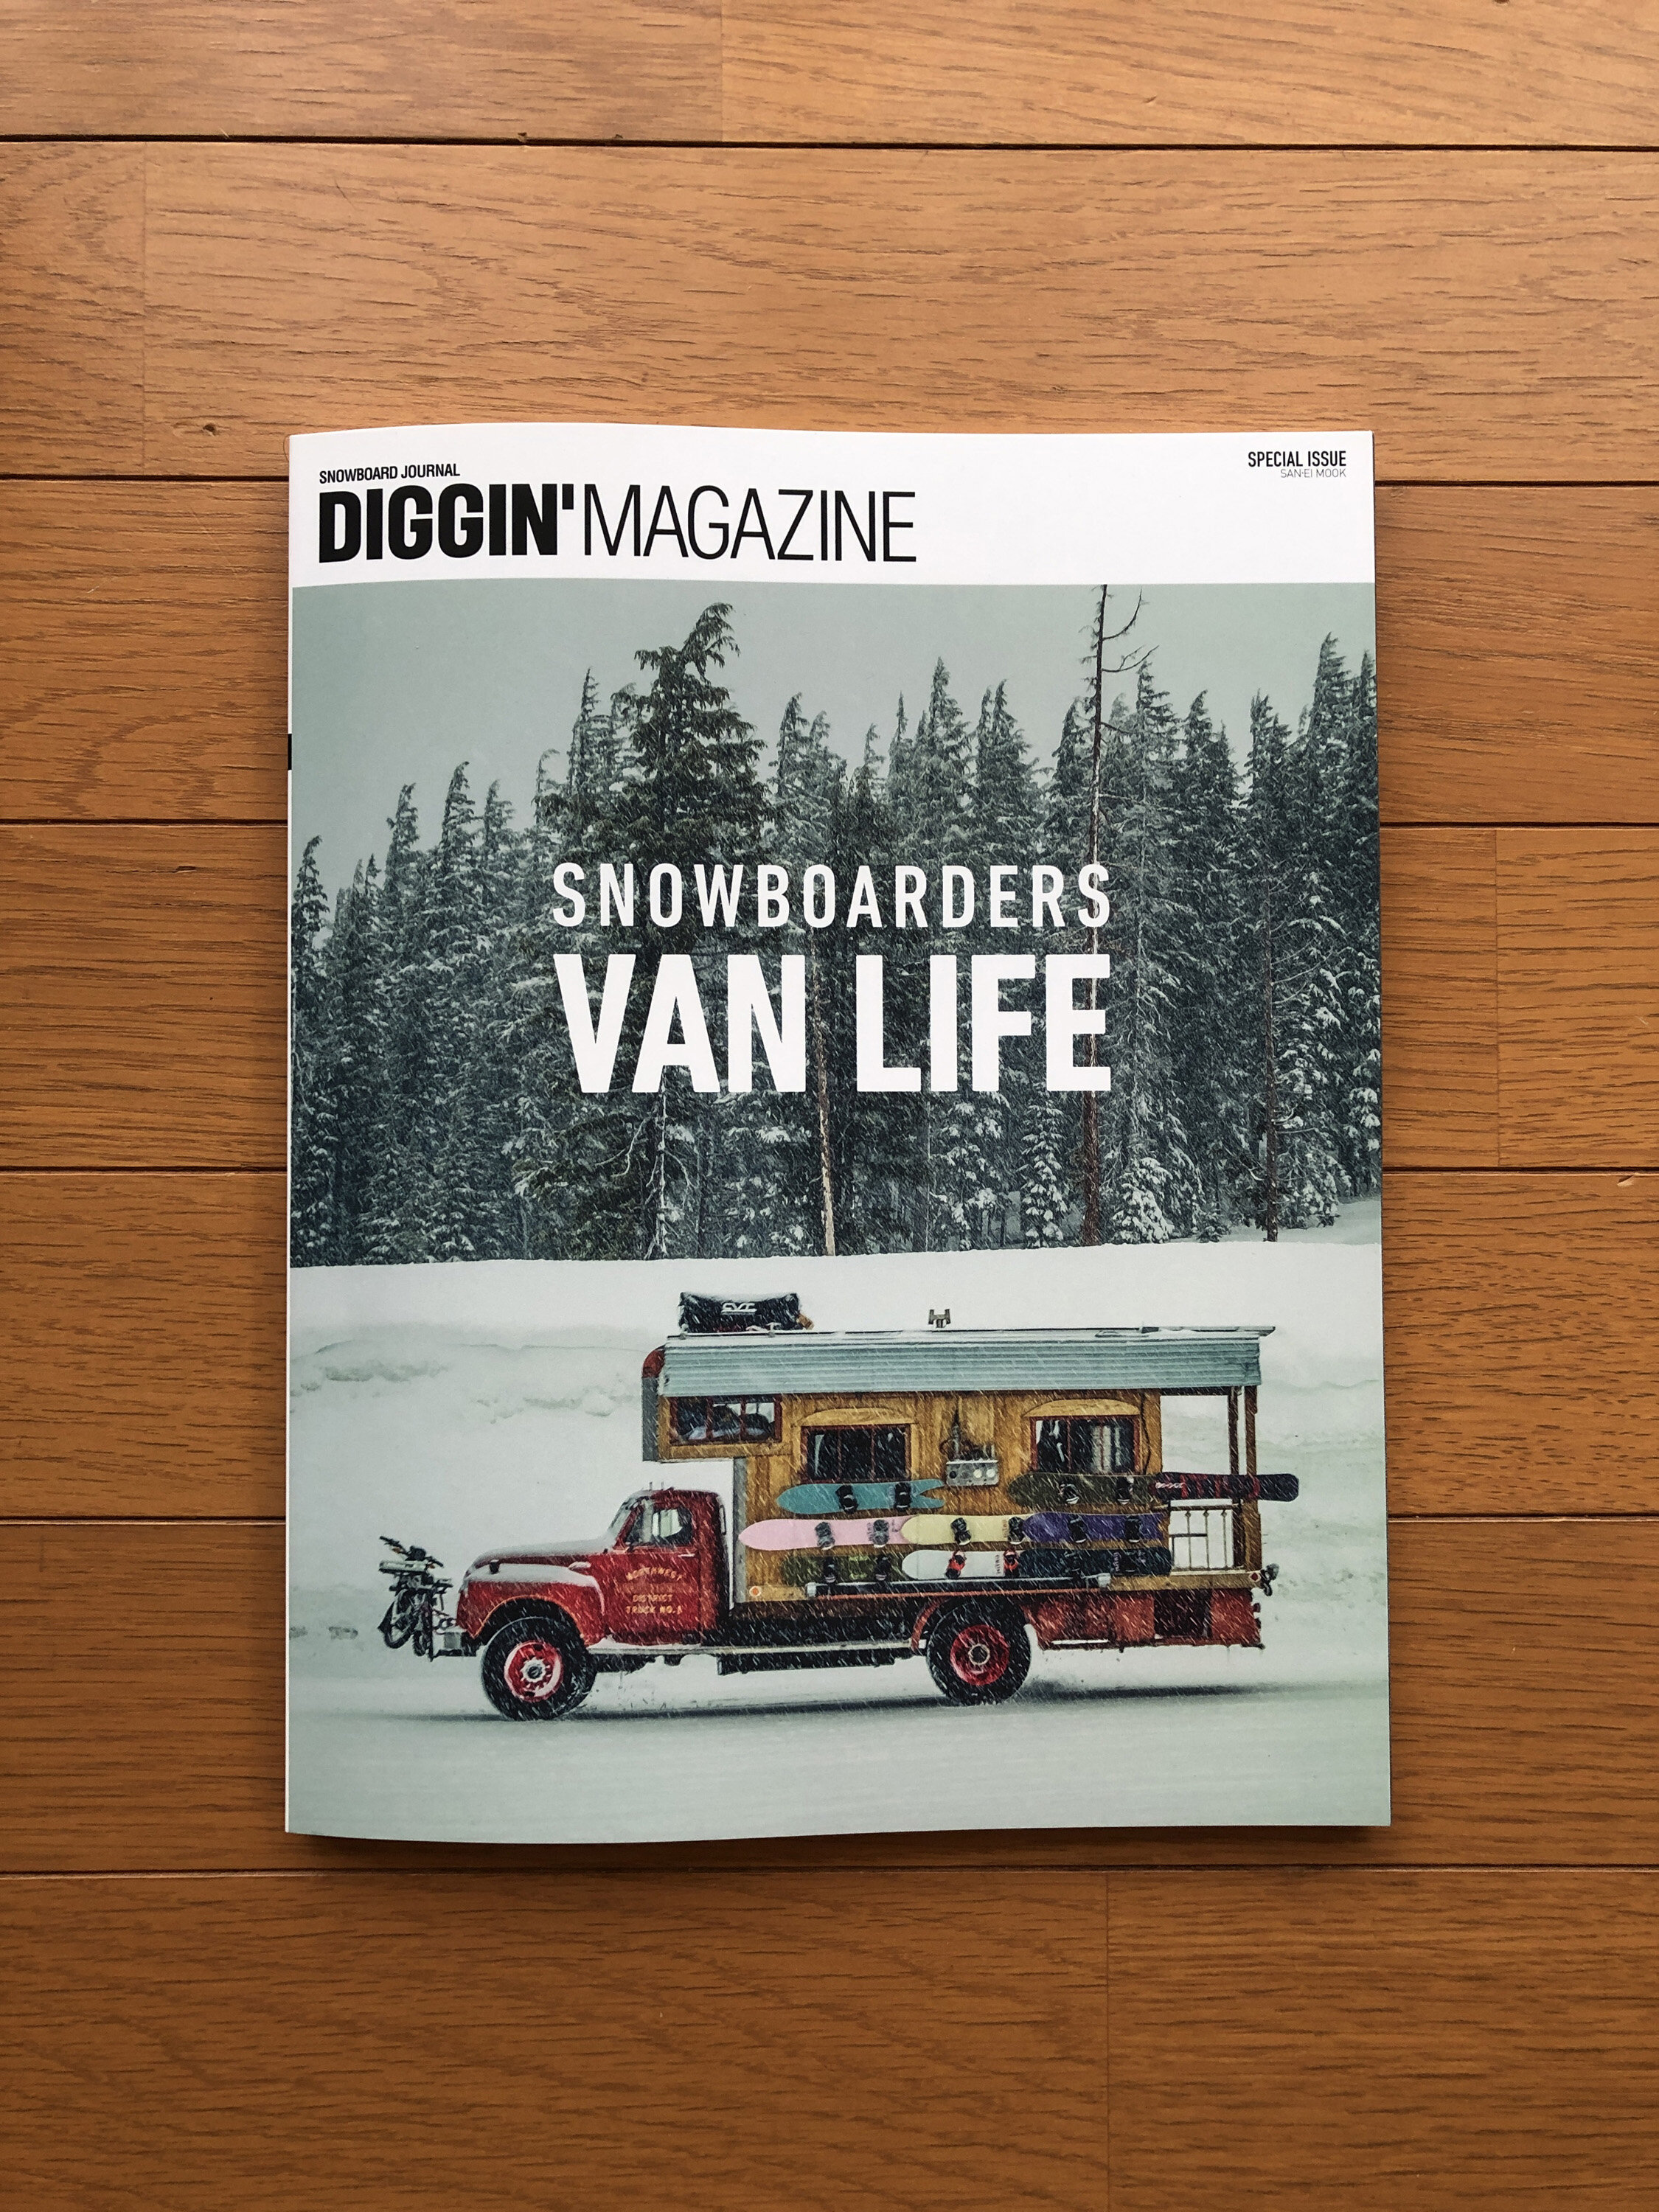 Digging Magazine , one of the most important Japanese snowboard magazines has published an article about us and our campervan adventures.